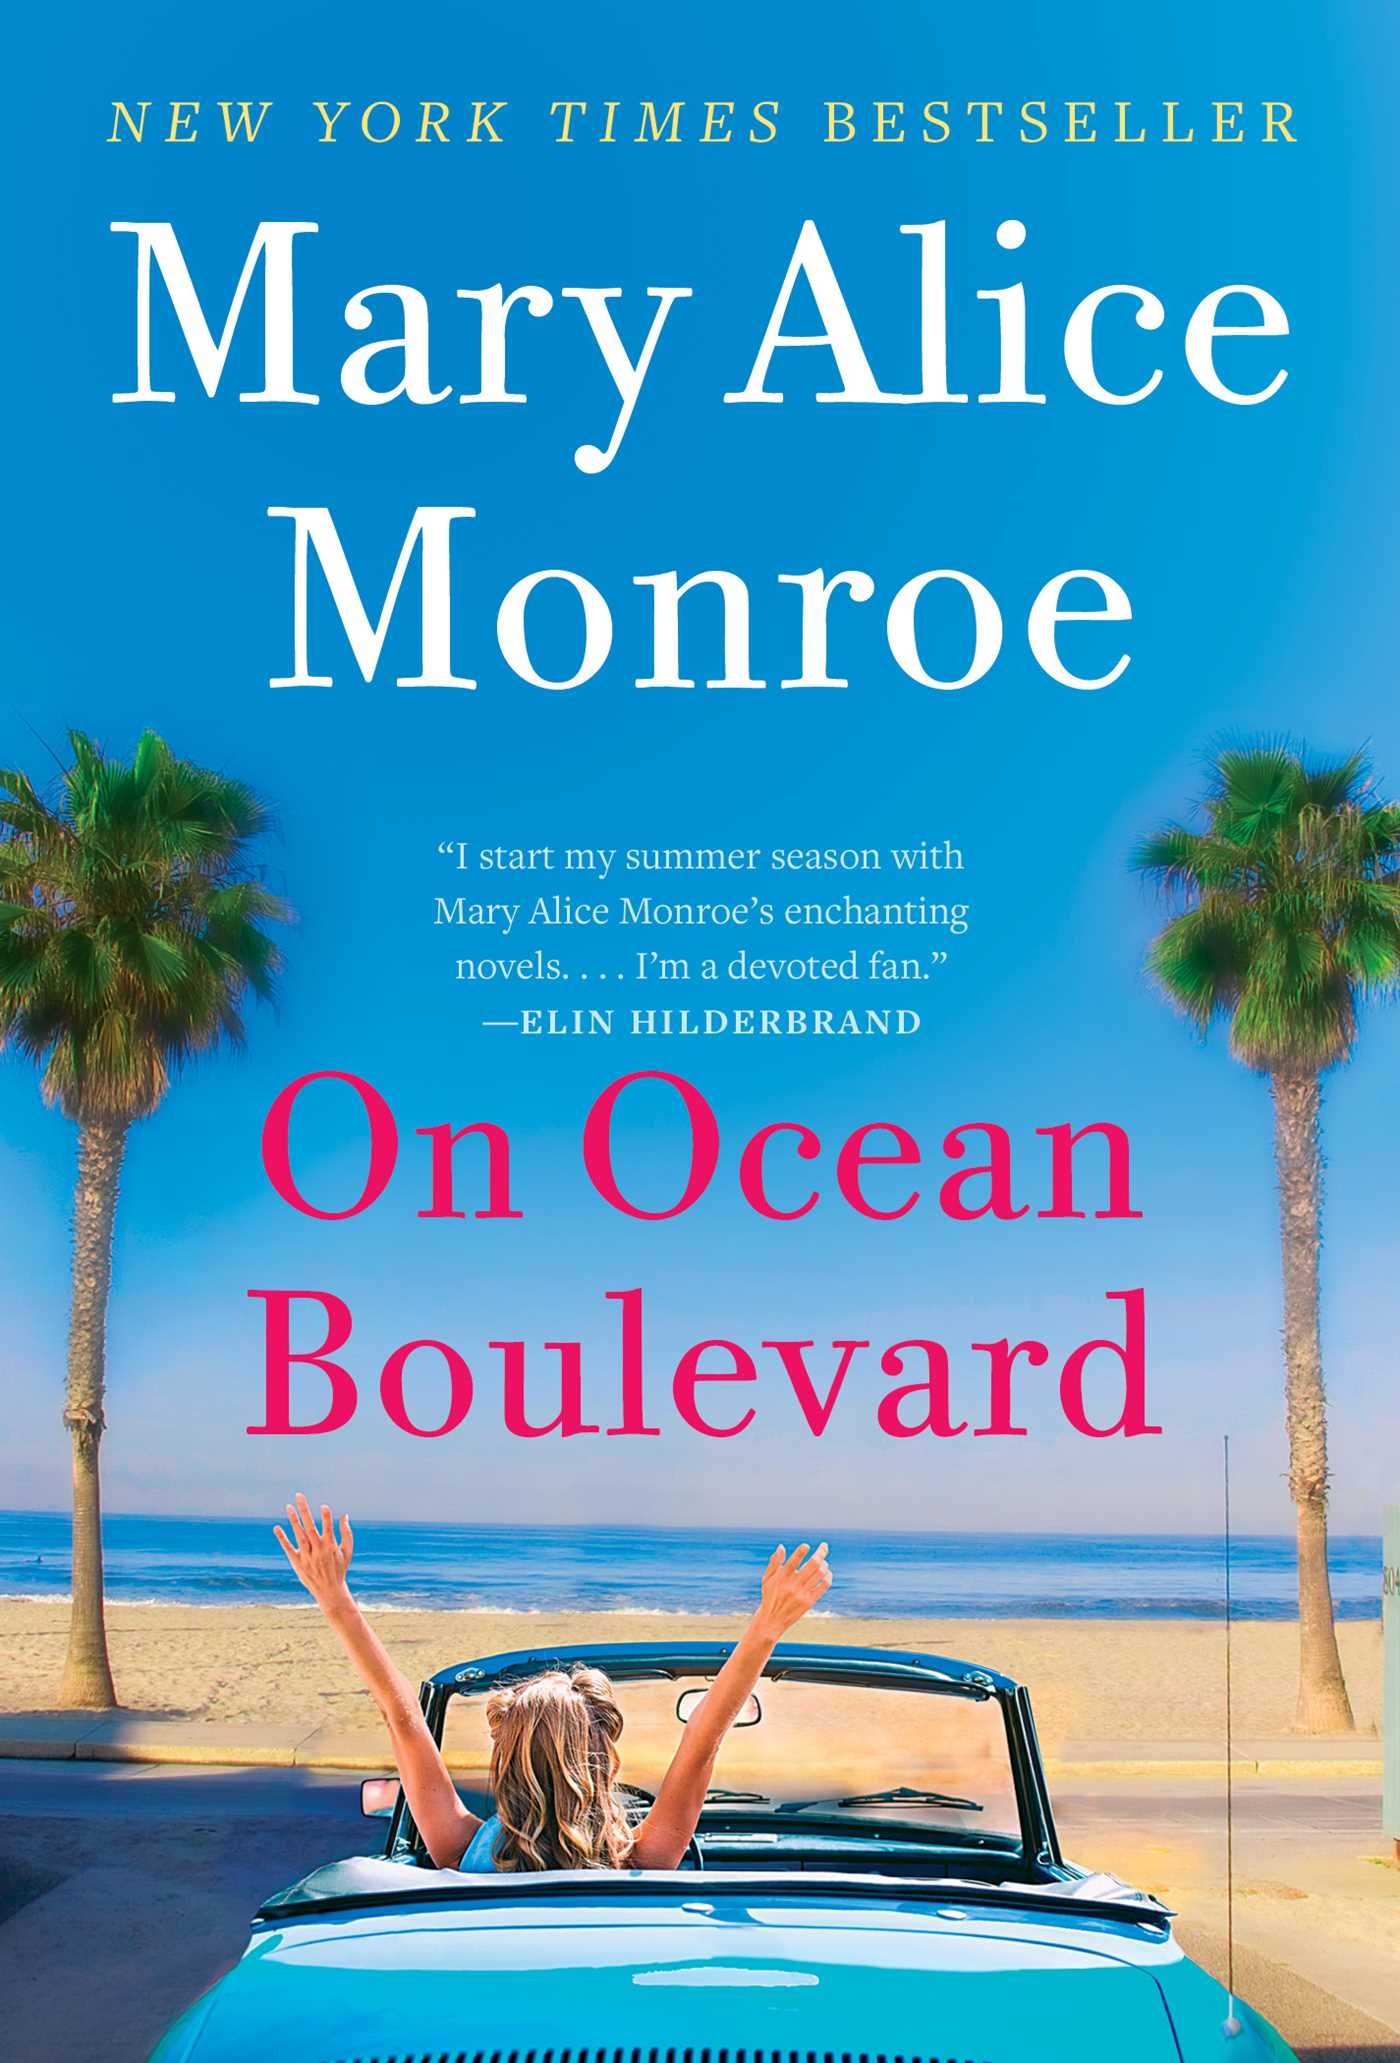 On Ocean Boulevard cover image